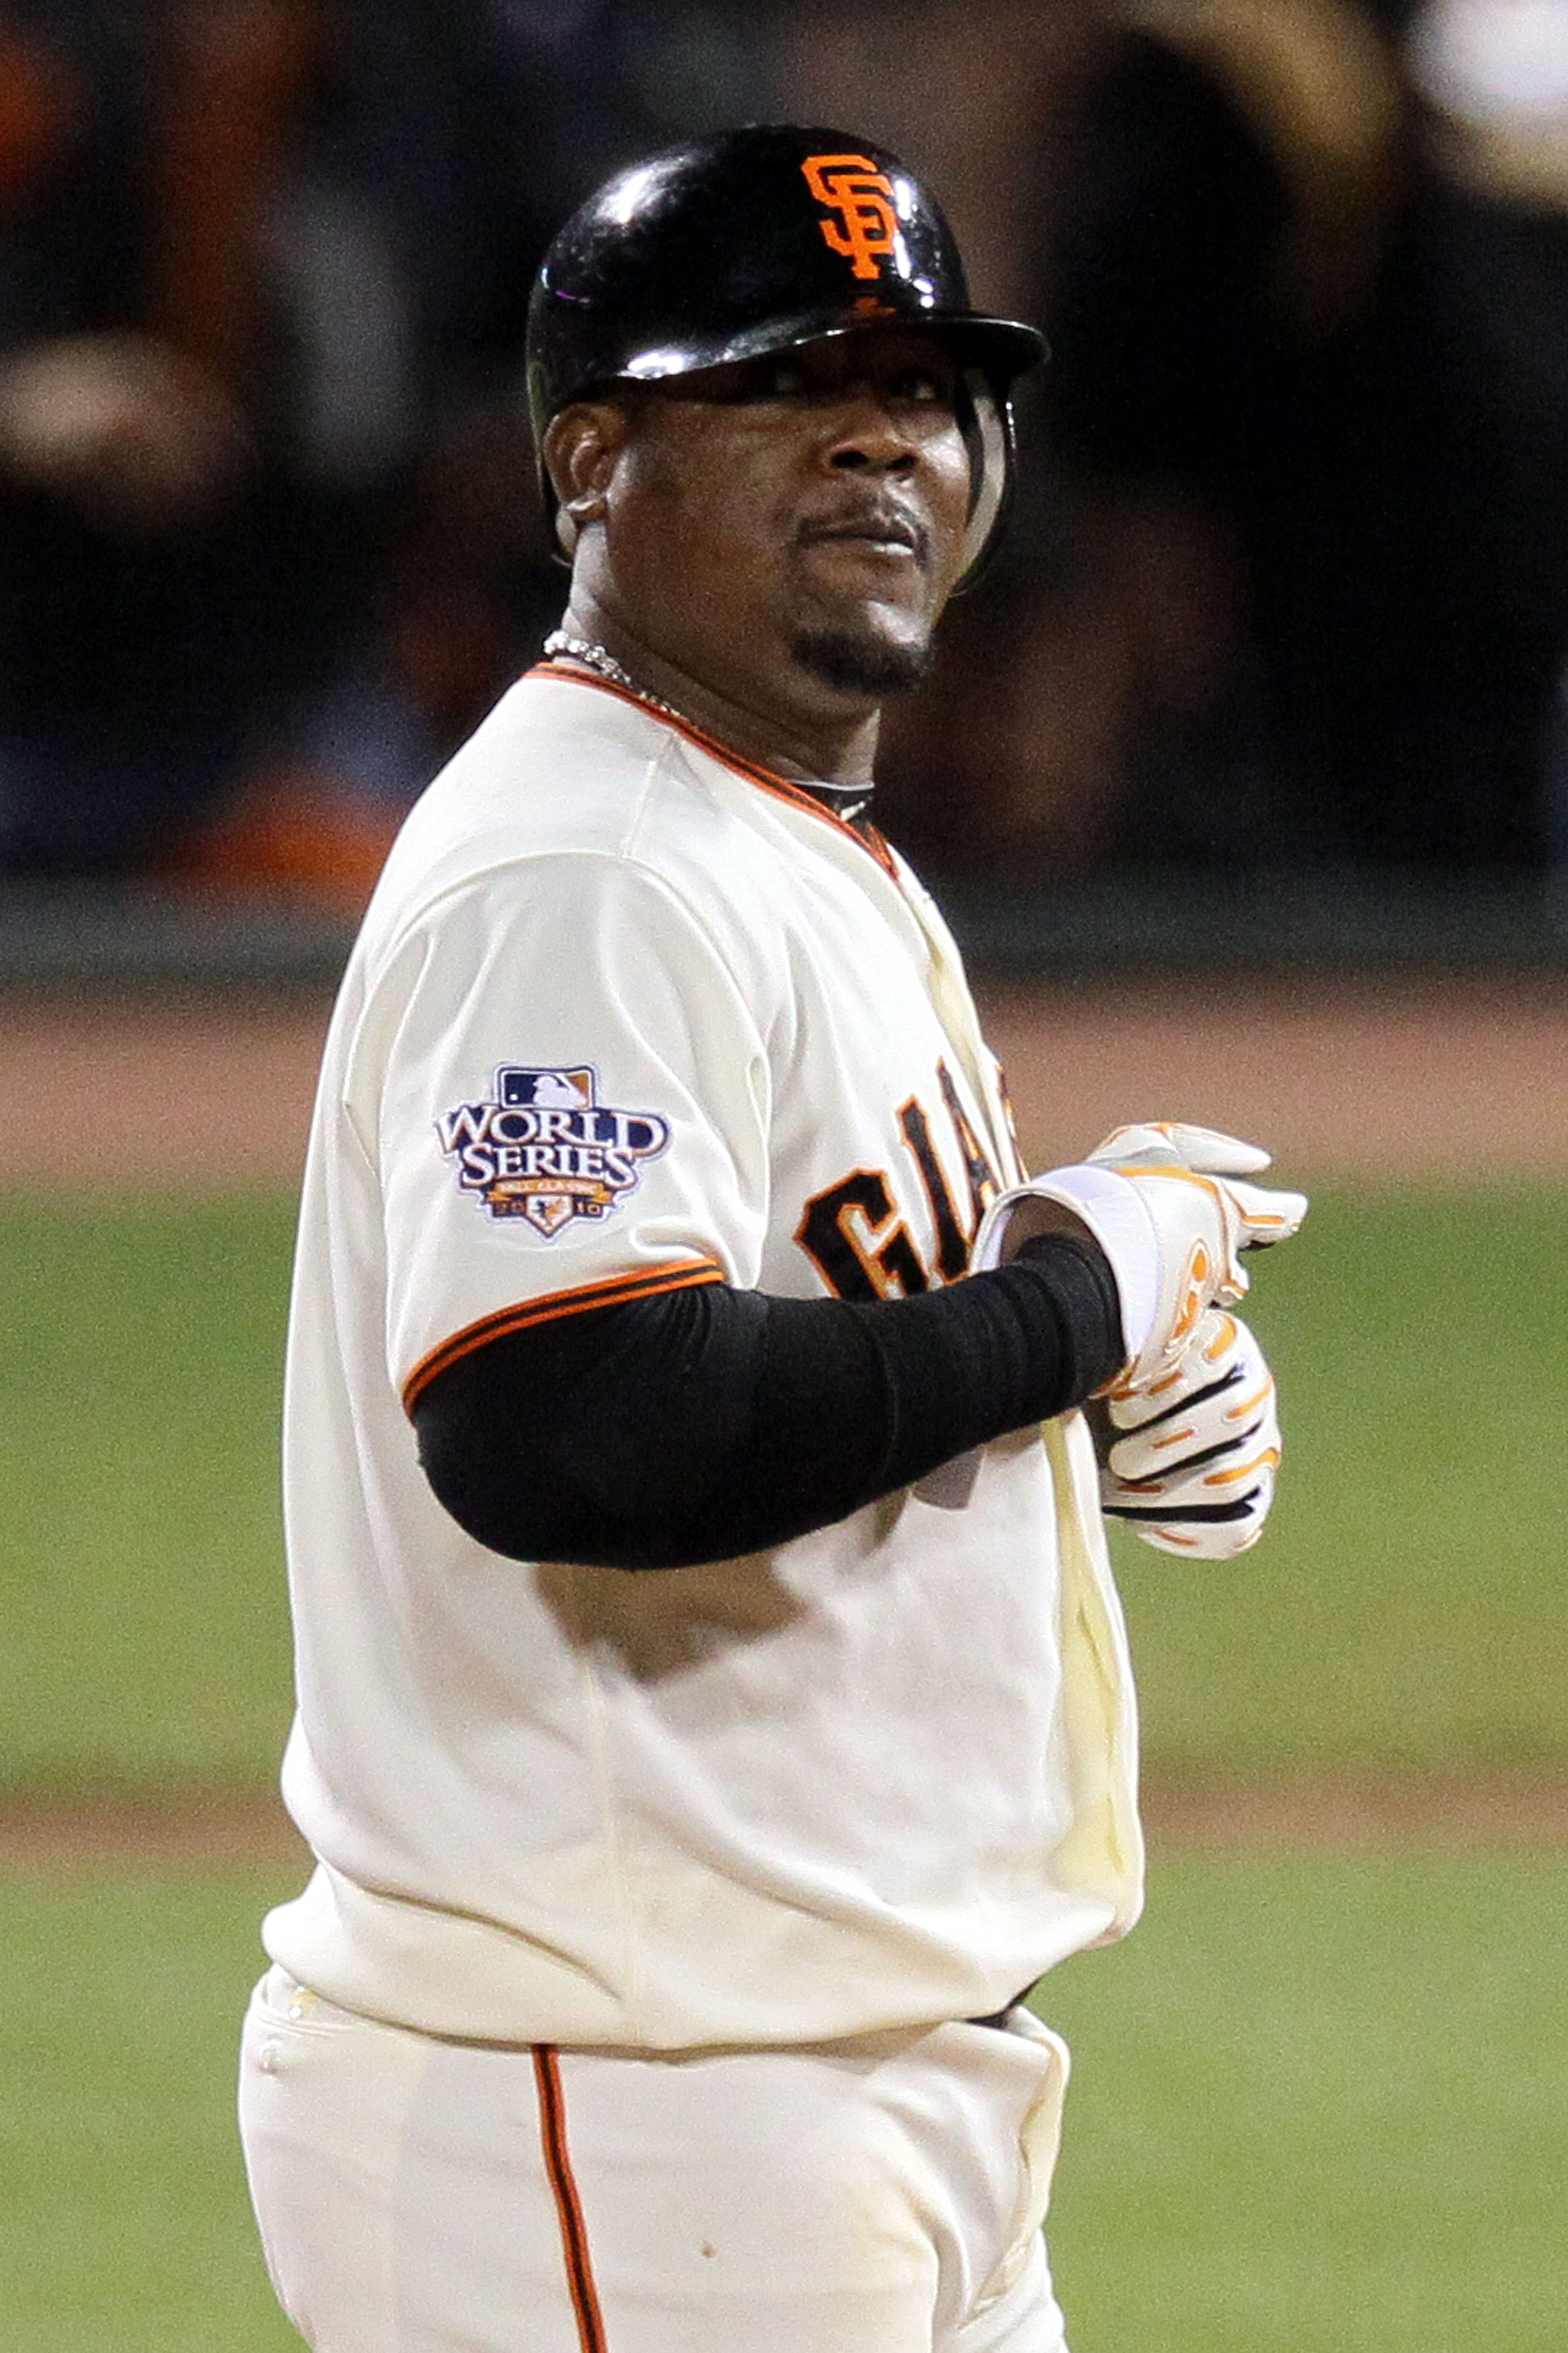 SAN FRANCISCO - OCTOBER 28:  Juan Uribe #5 of the San Francisco Giants reacts after hits a RBI double in the seventh inning off Darren Oliver #28 of the Texas Rangers in Game Two of the 2010 MLB World Series at AT&T Park on October 28, 2010 in San Francis